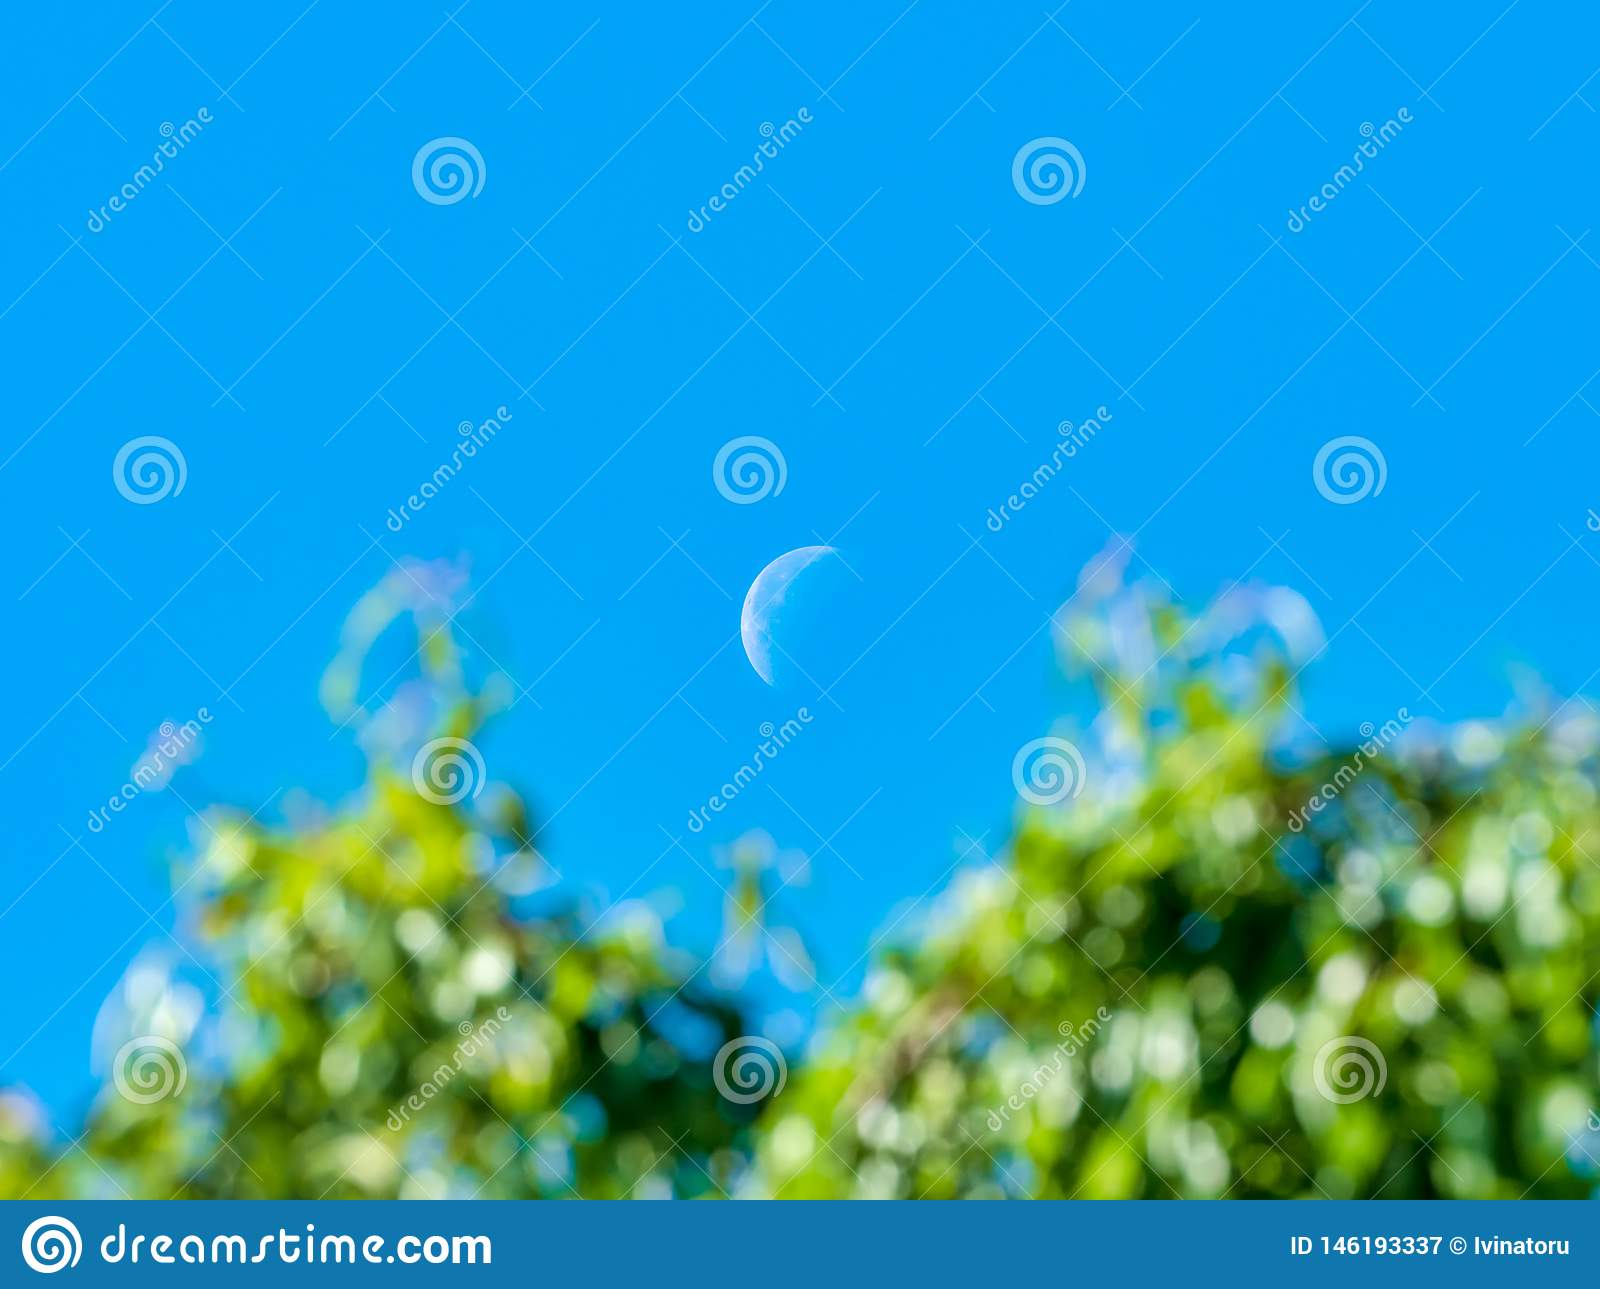 Scene with half day crescent moon and green tree branches in the foreground out of focus